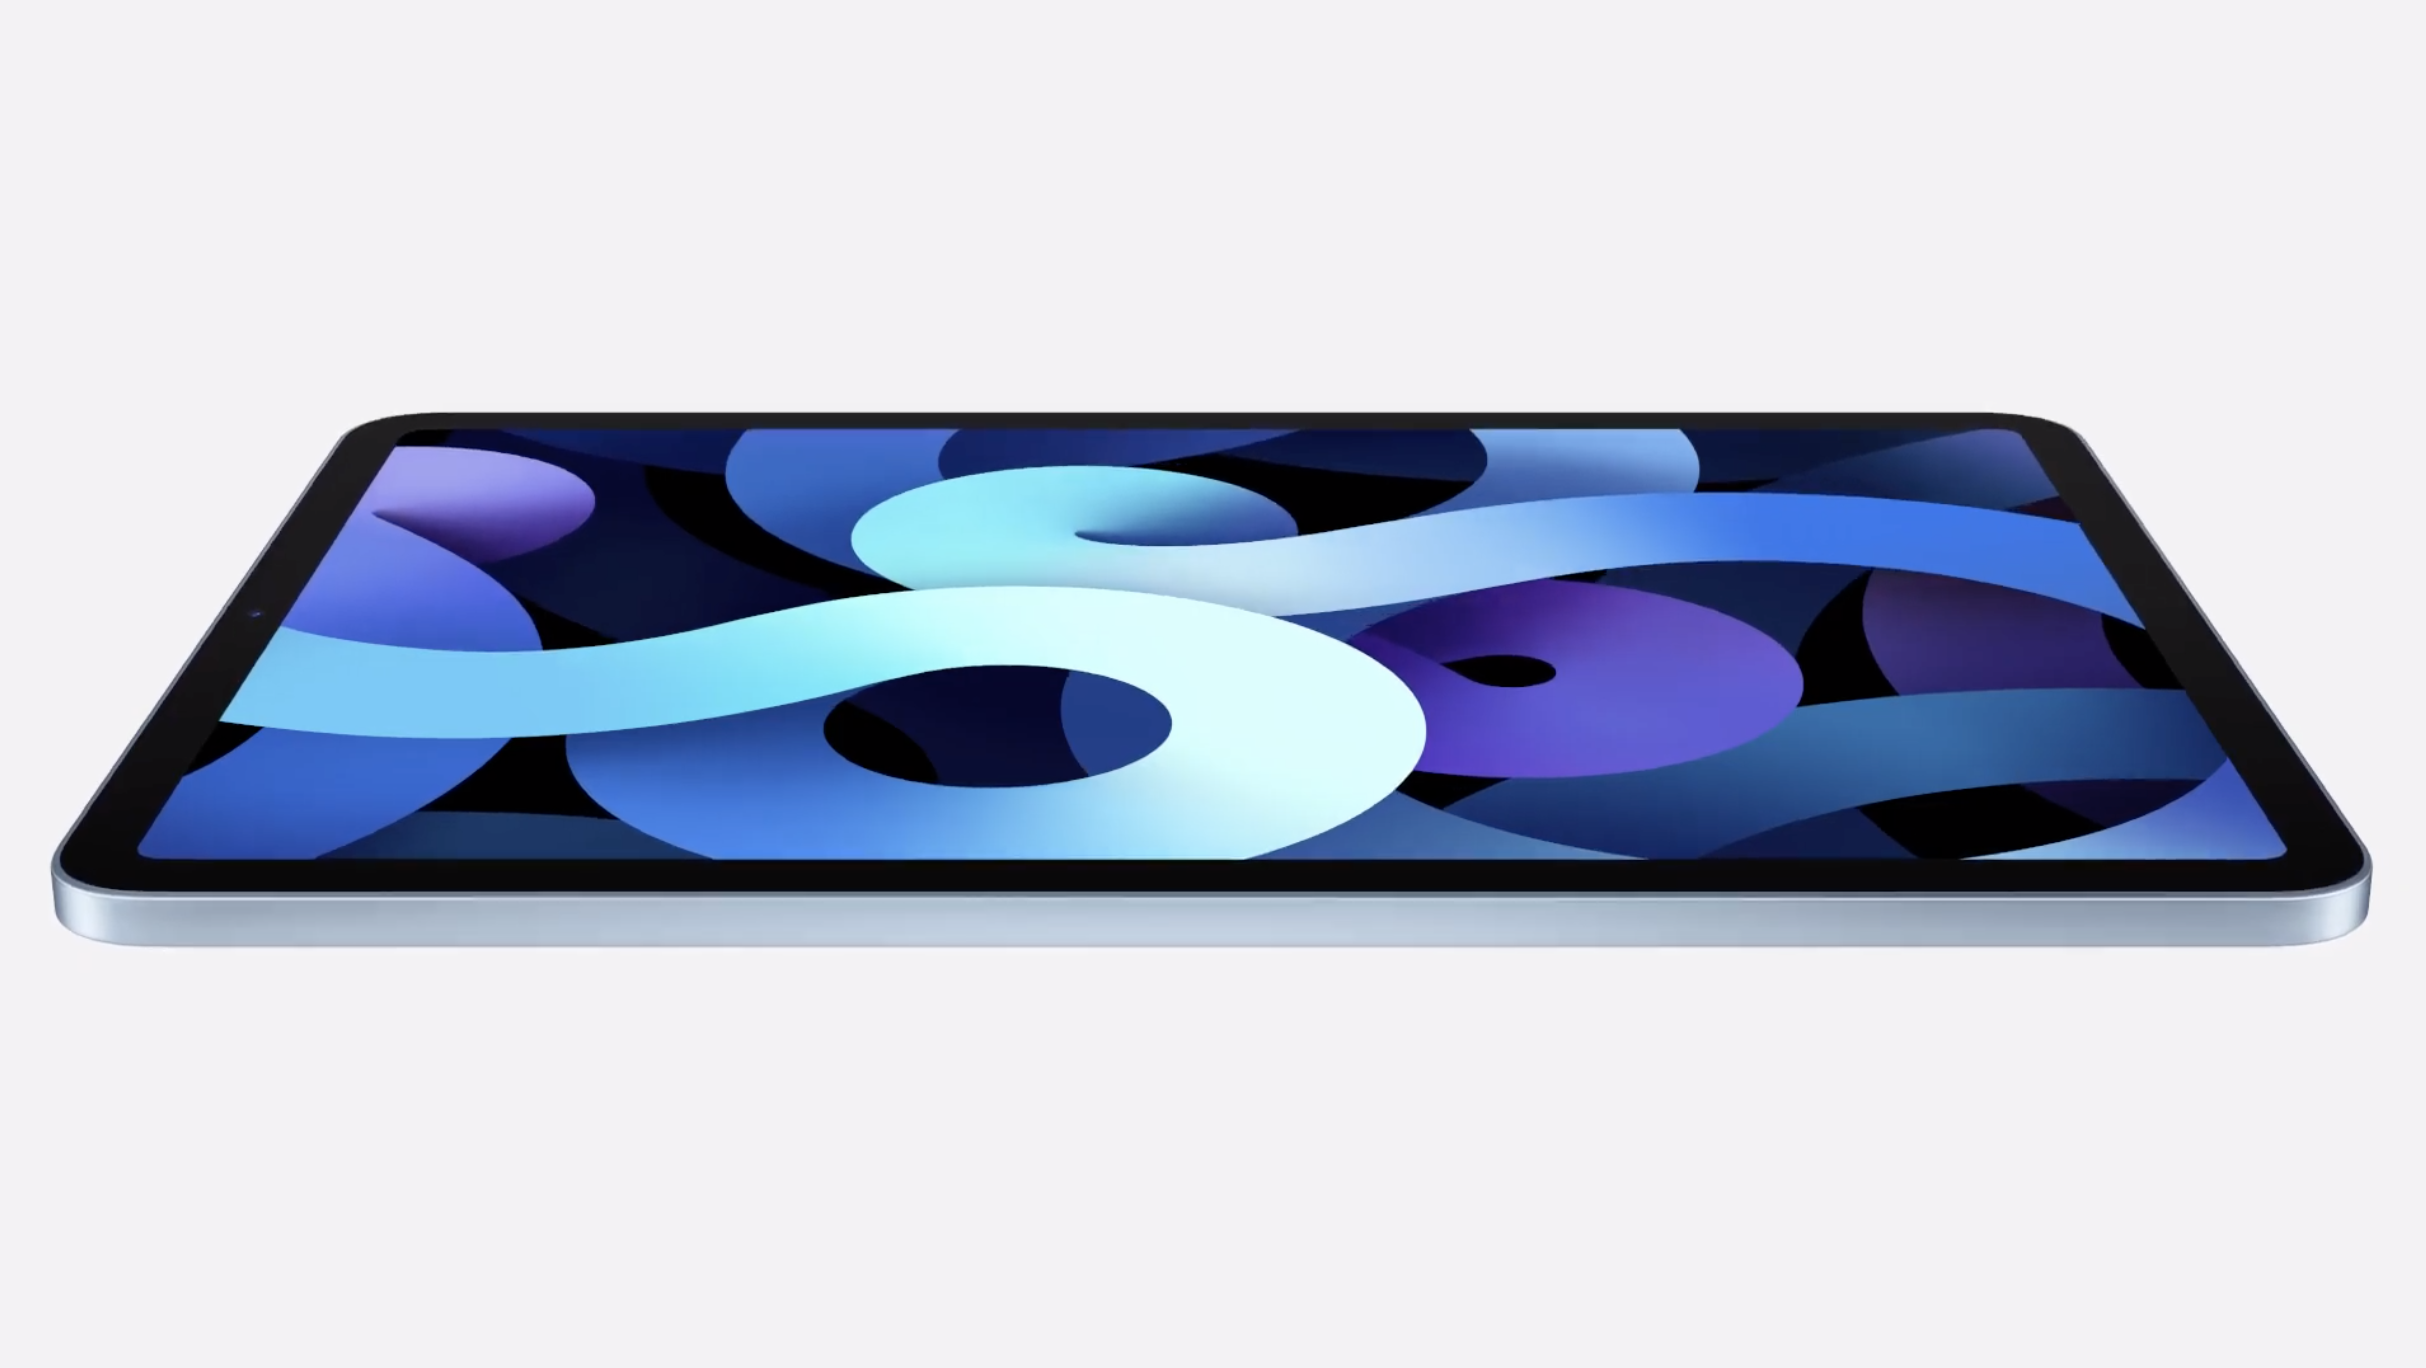 New Ipad Air 4 Release Date Price Specs And News Tom S Guide Ipad Air New Ipad Apple Ipad